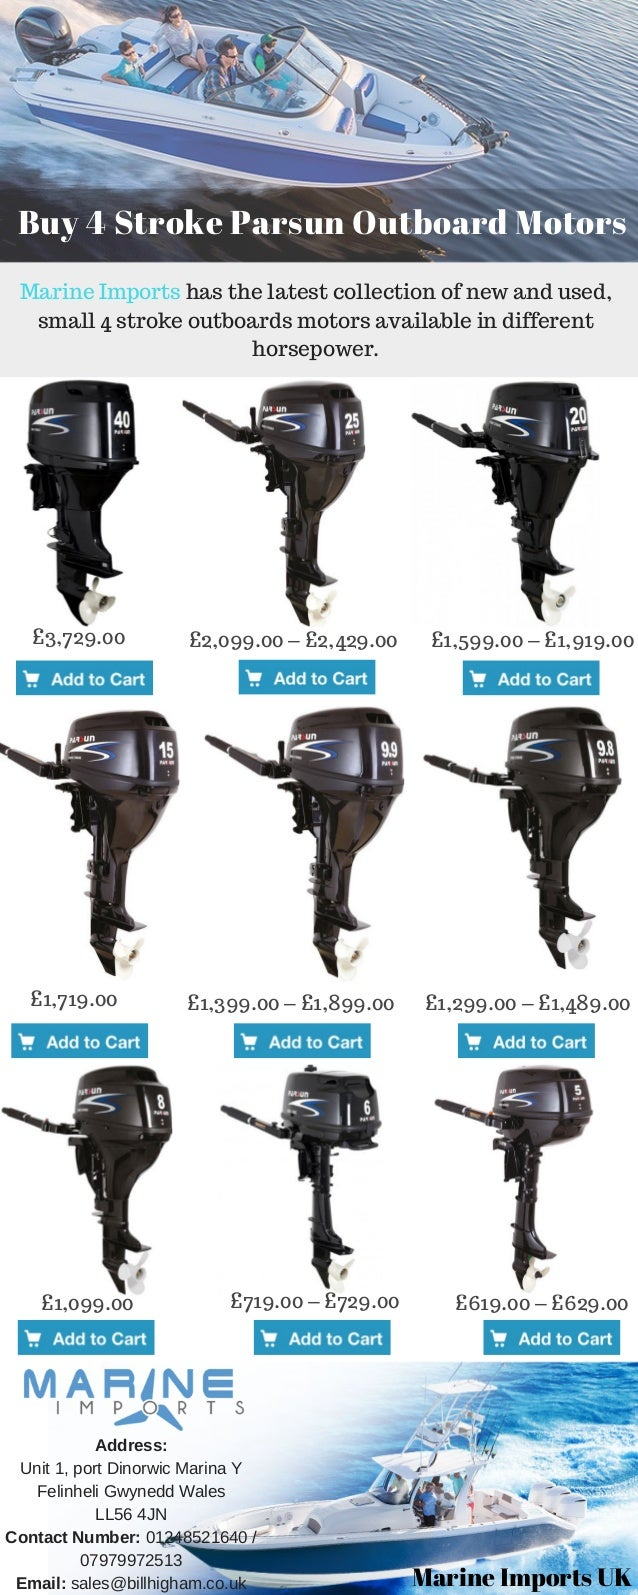 4 Stroke Parsun Outboard Motors and Engines